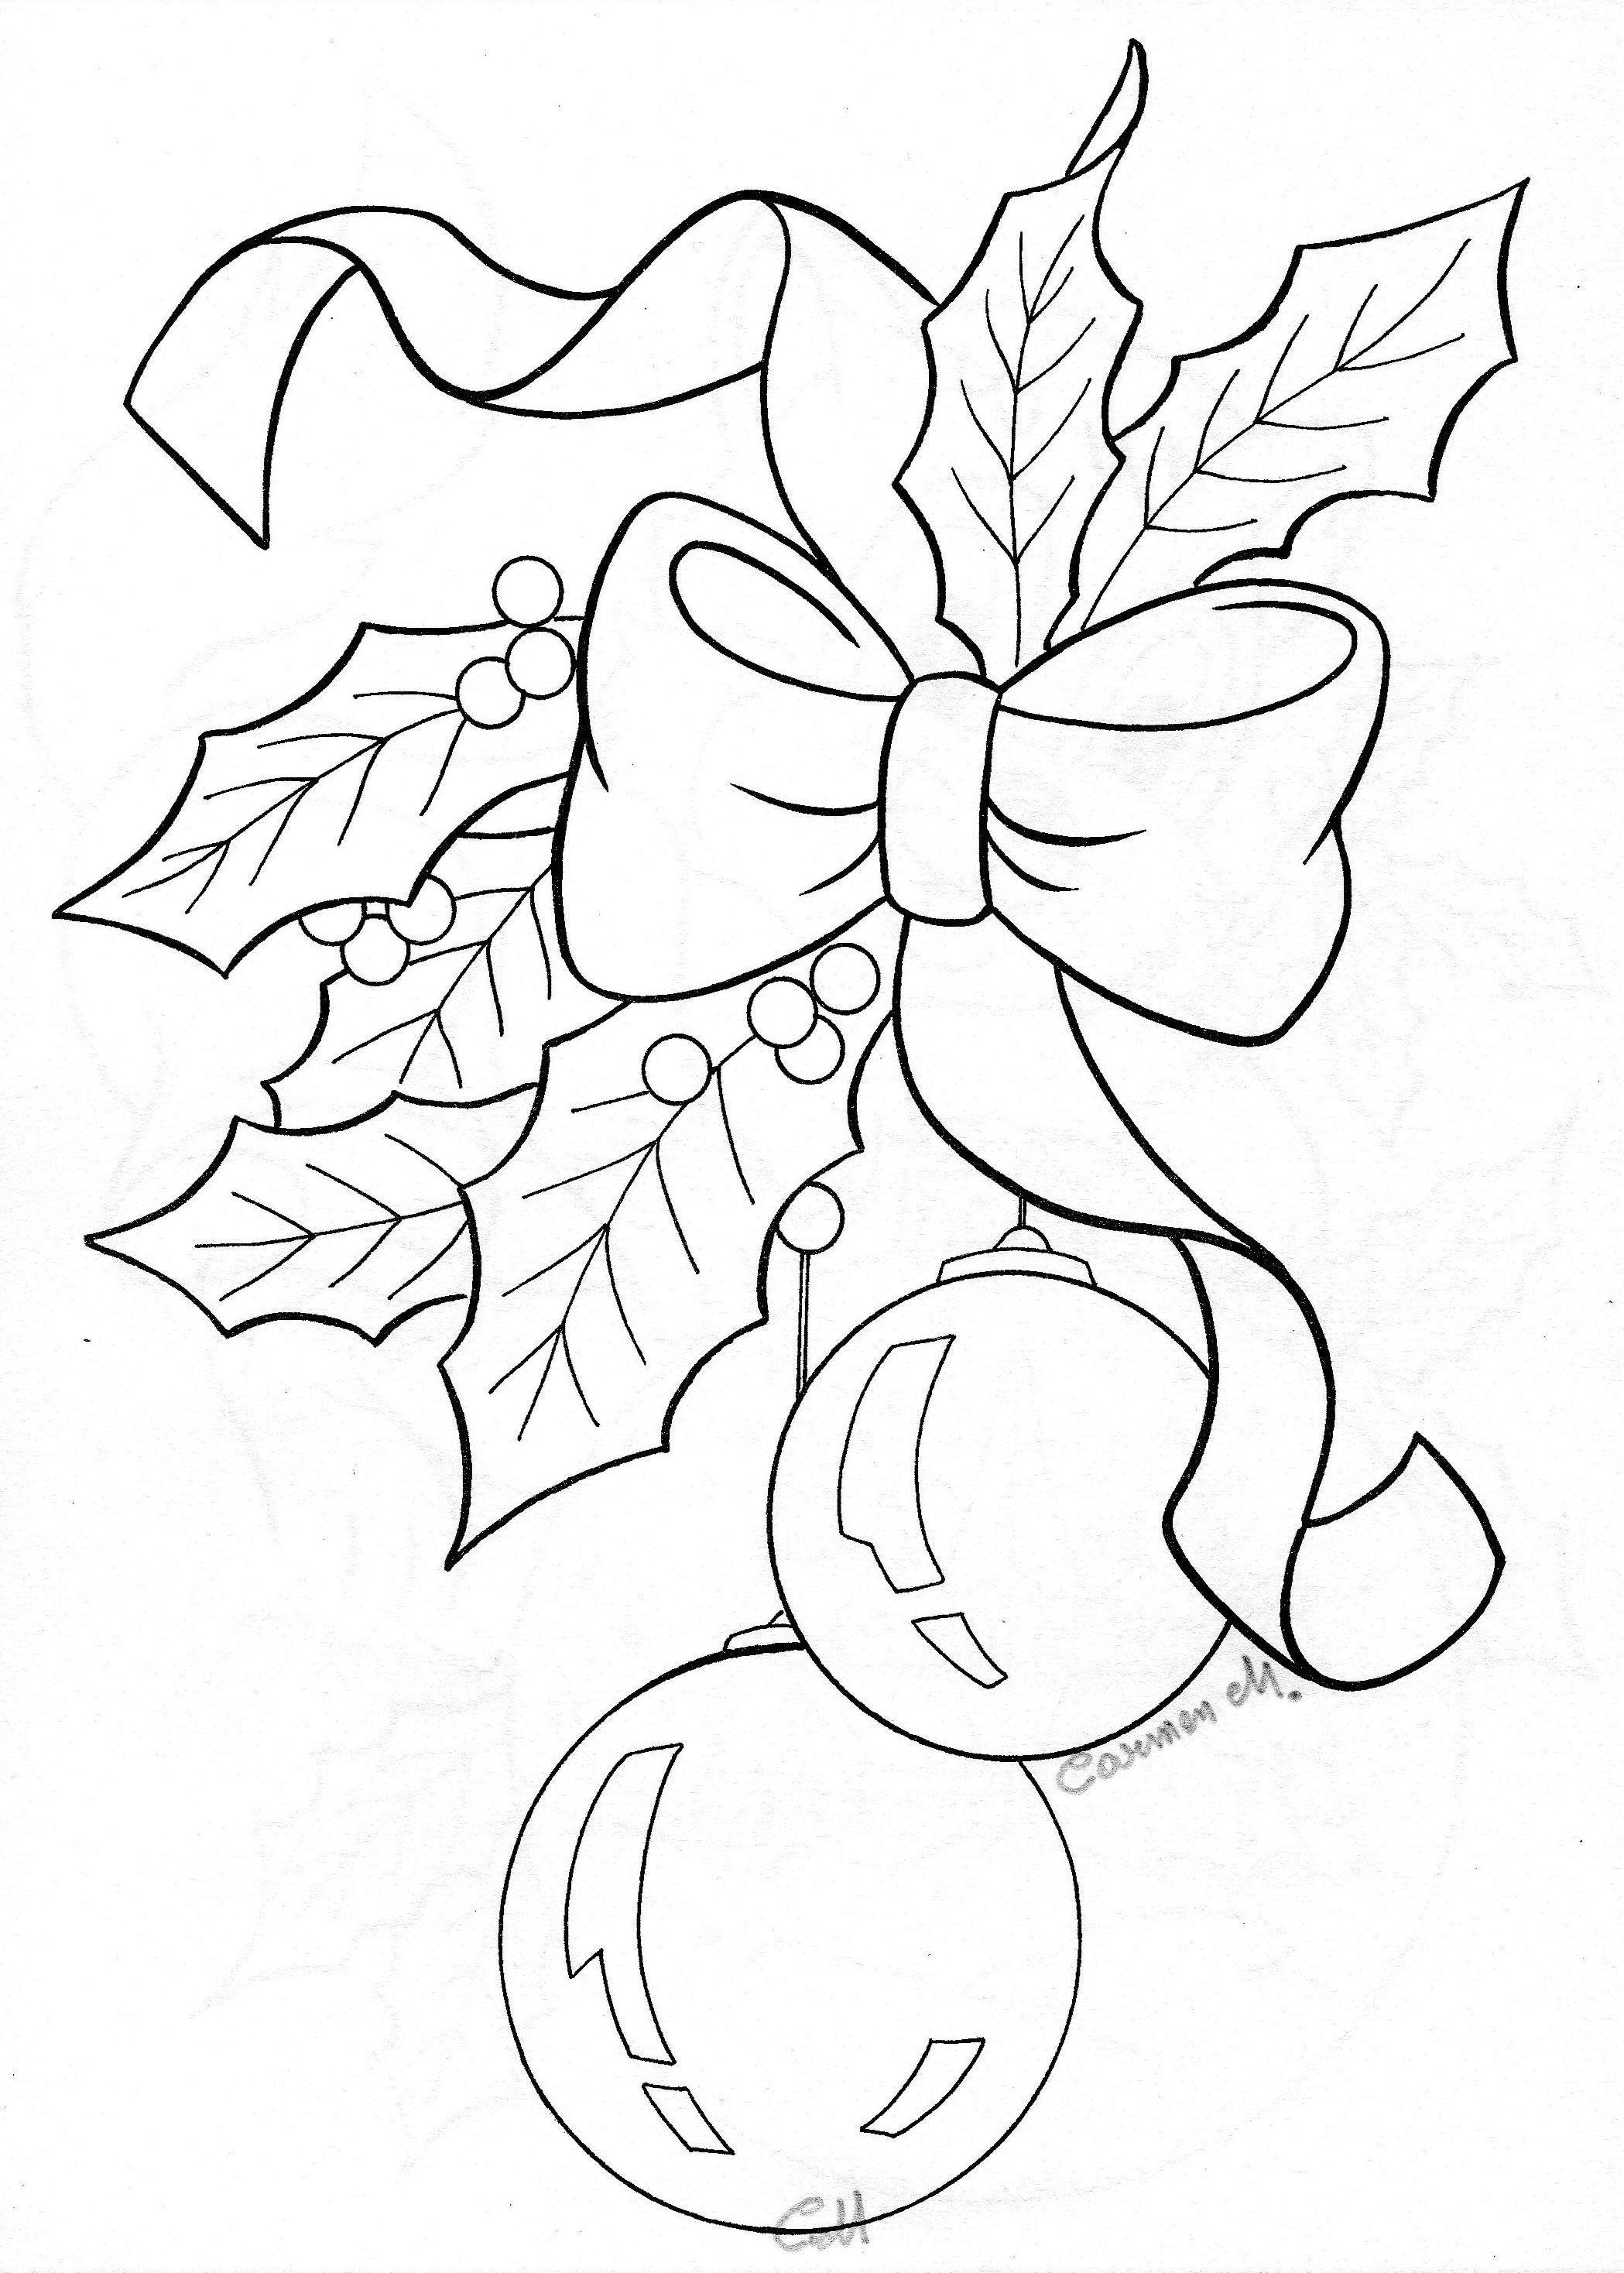 holly border line drawing - Google Search | Christmas ...